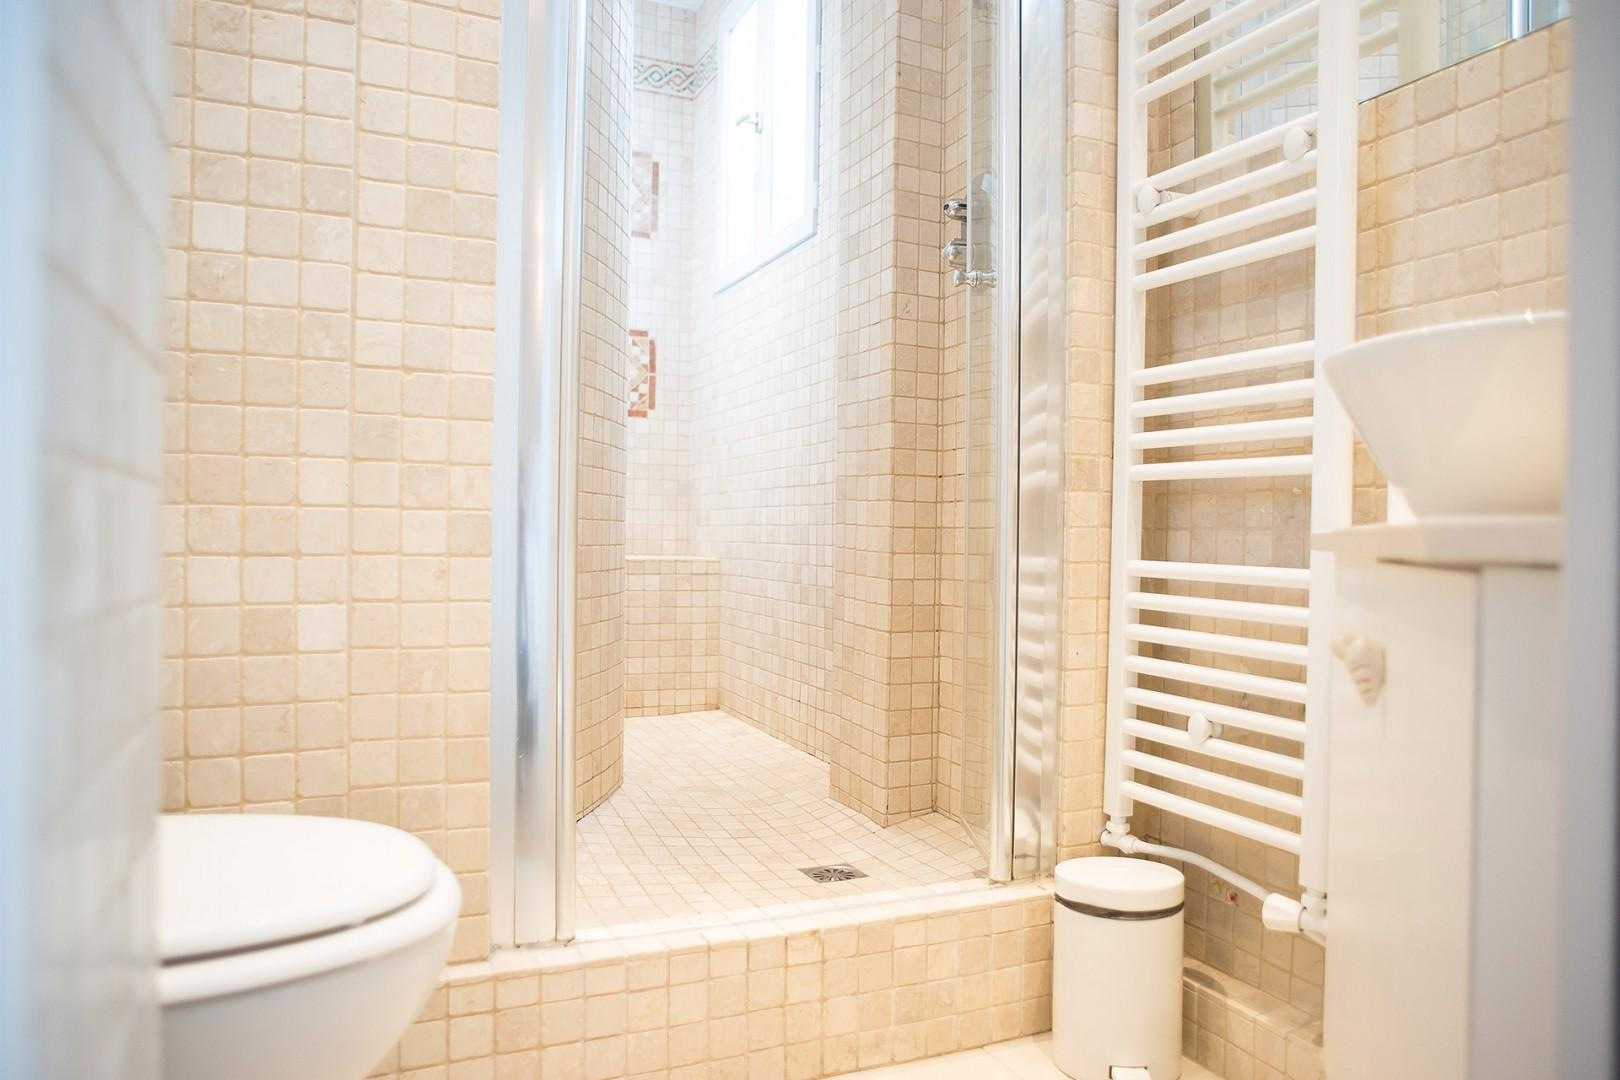 The luxurious en suite bathroom has a shower, toilet and sink.